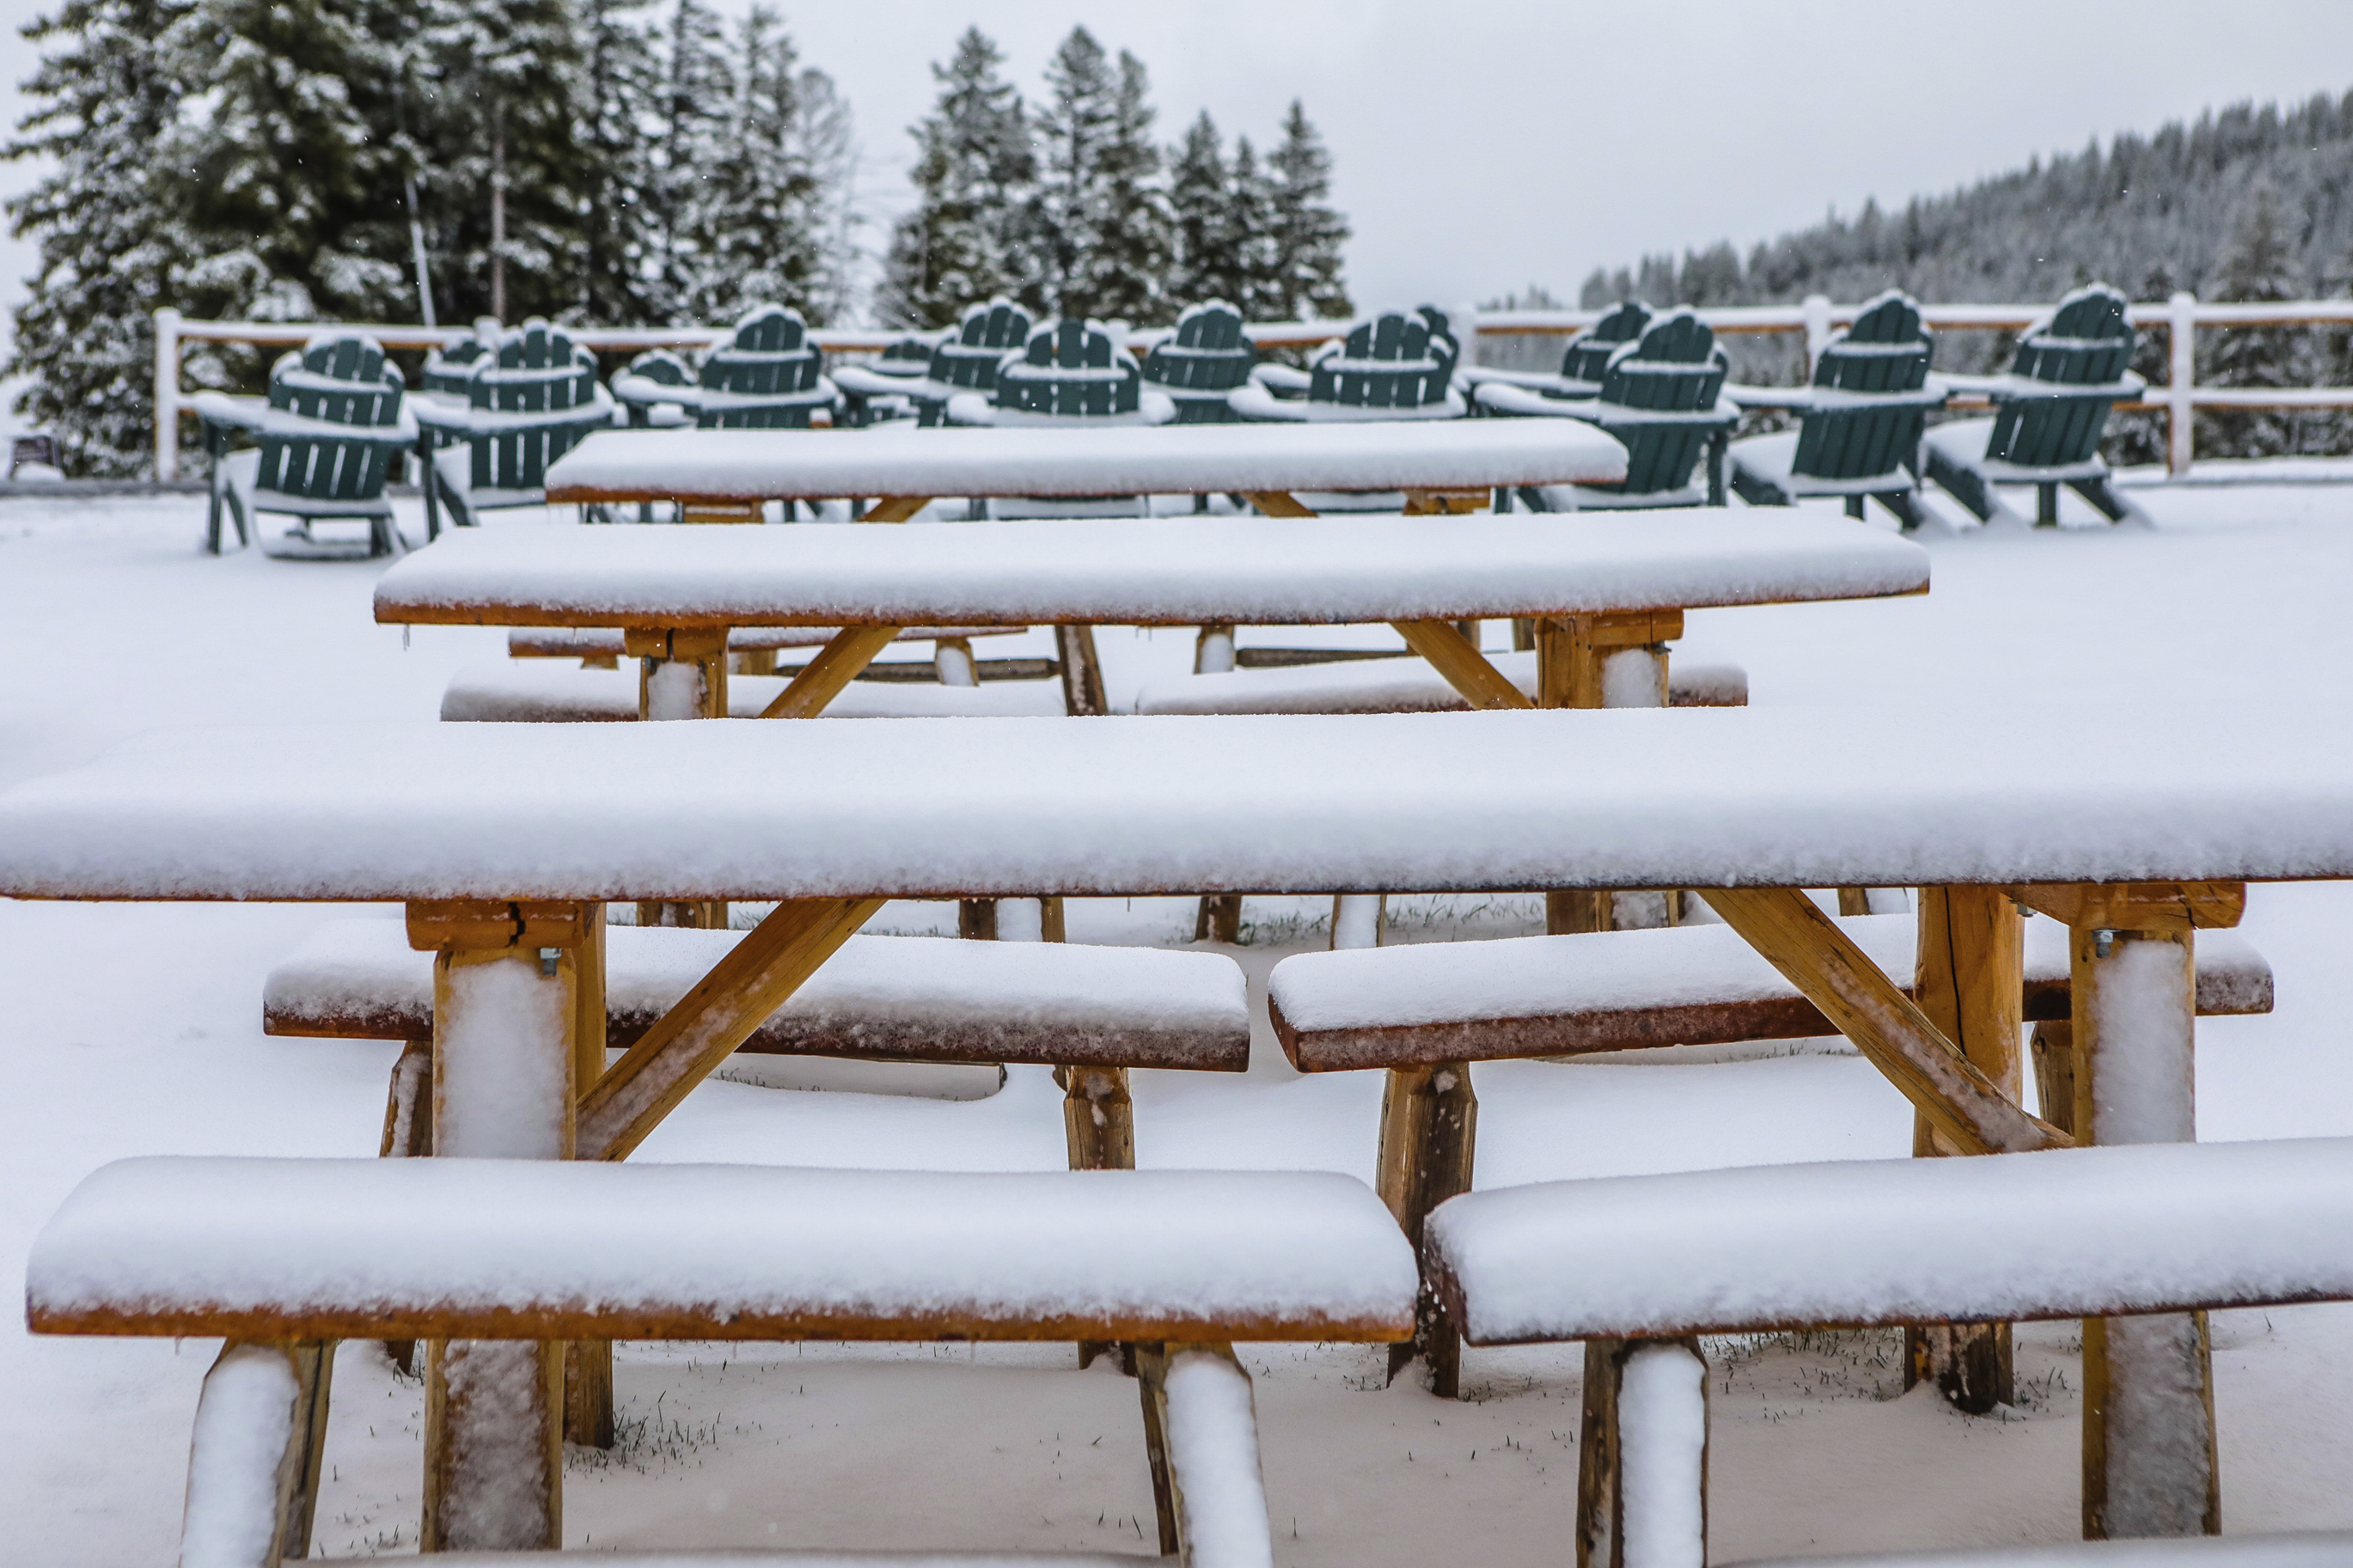 Colorado's snowpack is 40 times normal after rare summer solstice dump